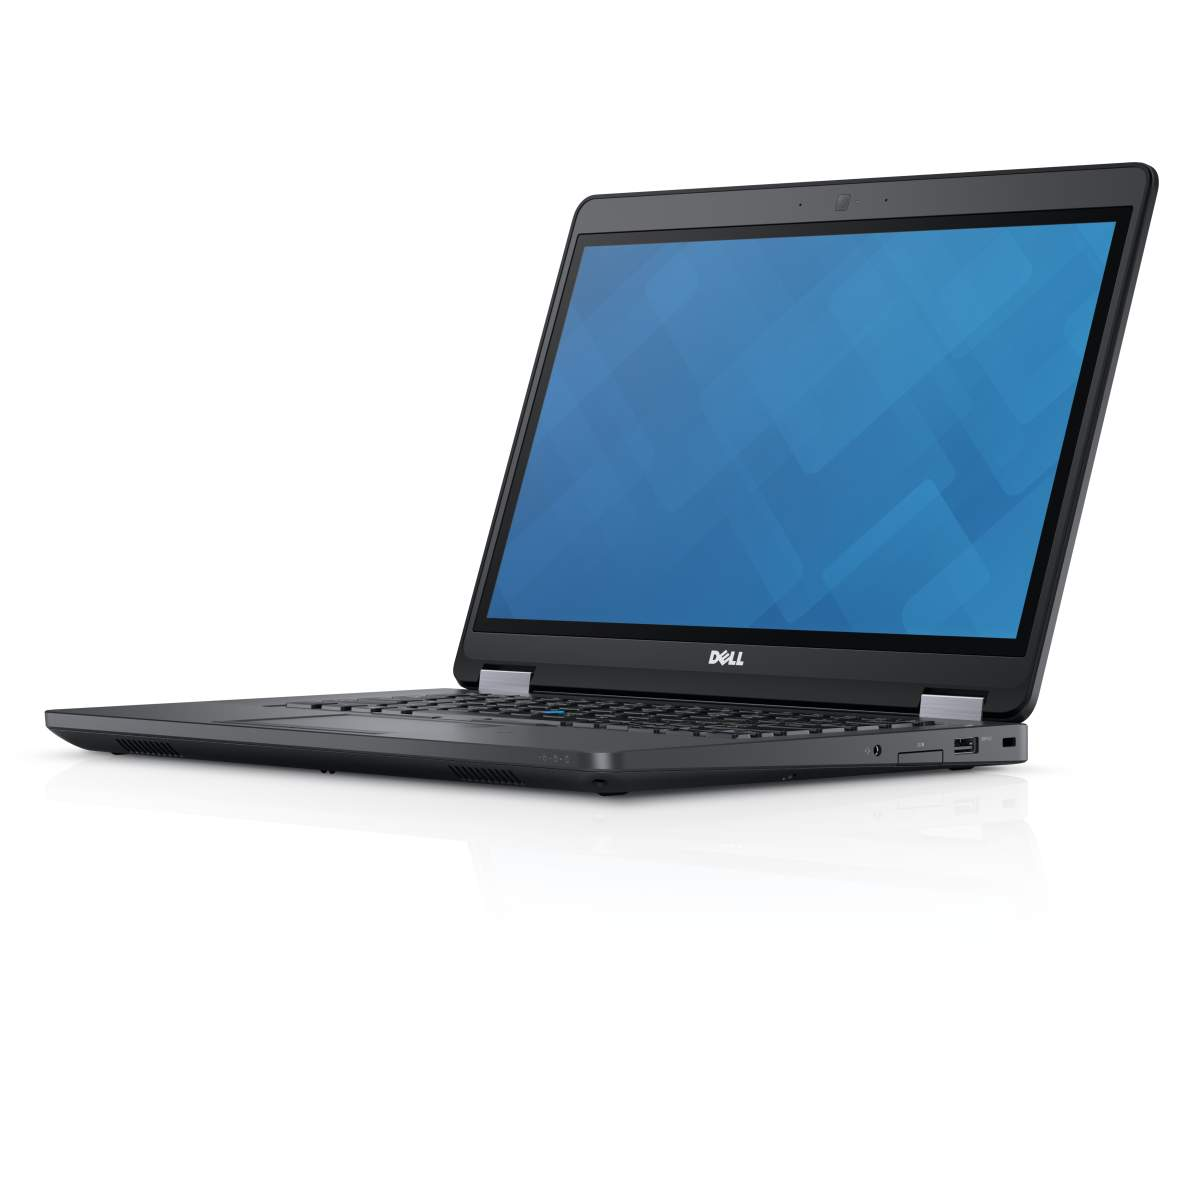 Dell Latitude 14 5000 Series (Model E5470, Park City) Touch 14-inch notebook computer.